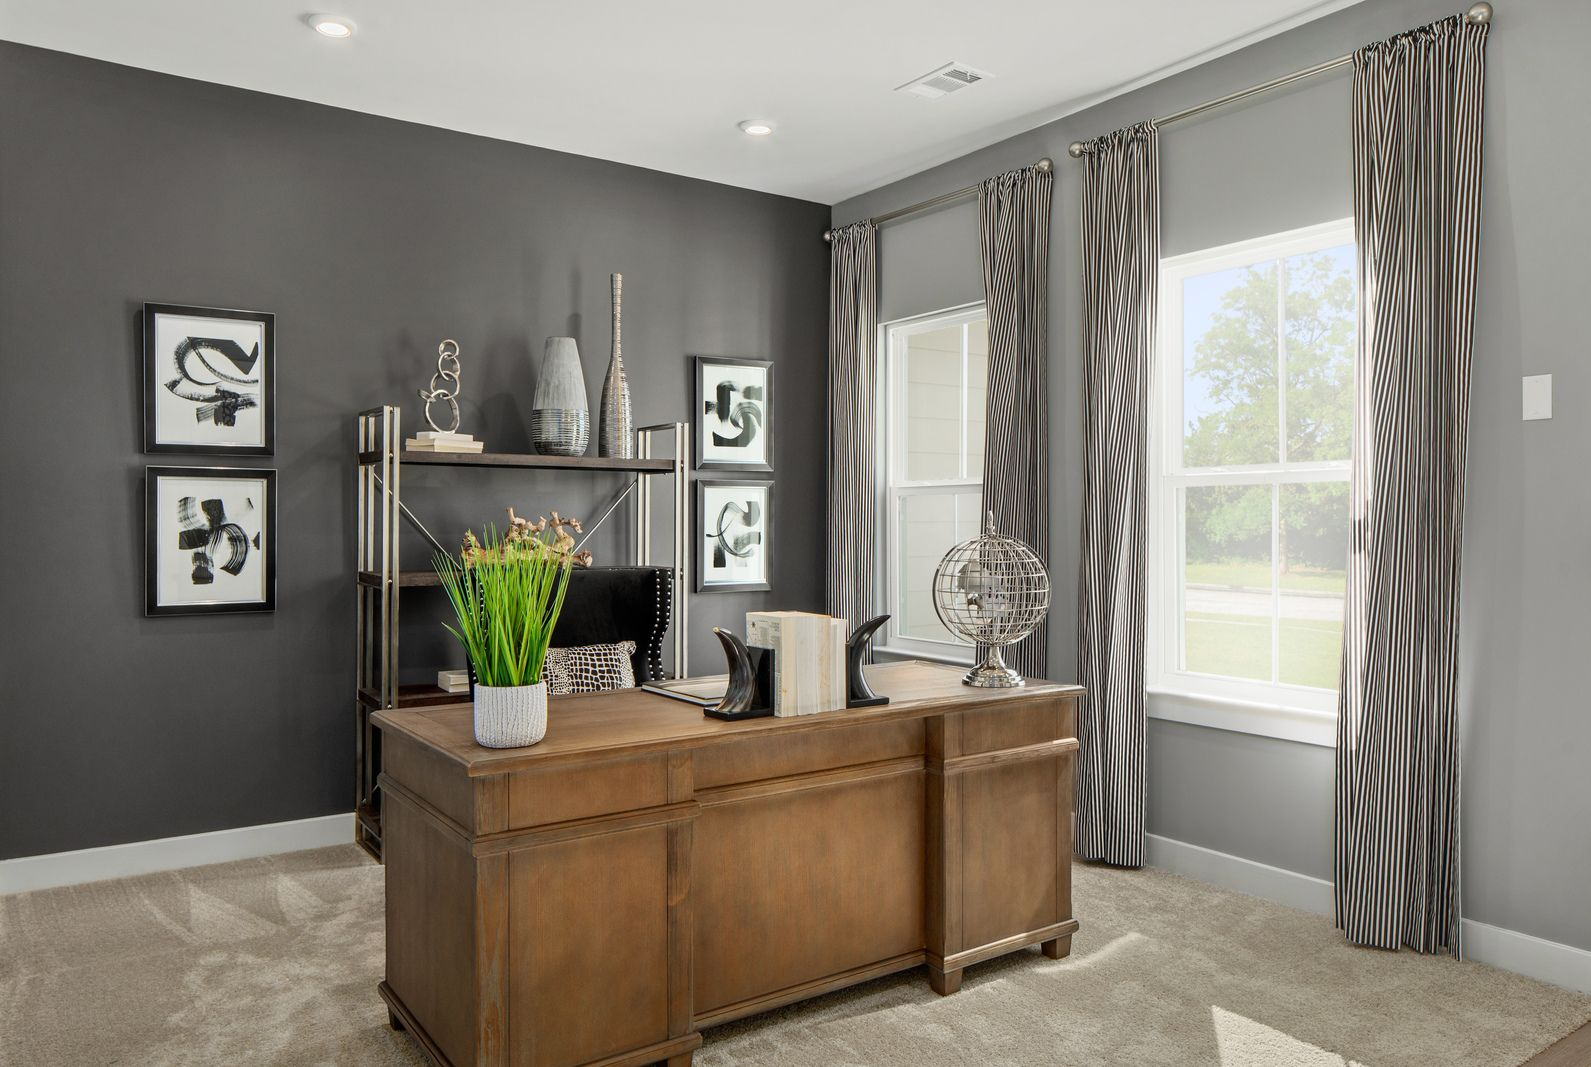 Living Area featured in the Savannah By Ryan Homes in Washington, MD